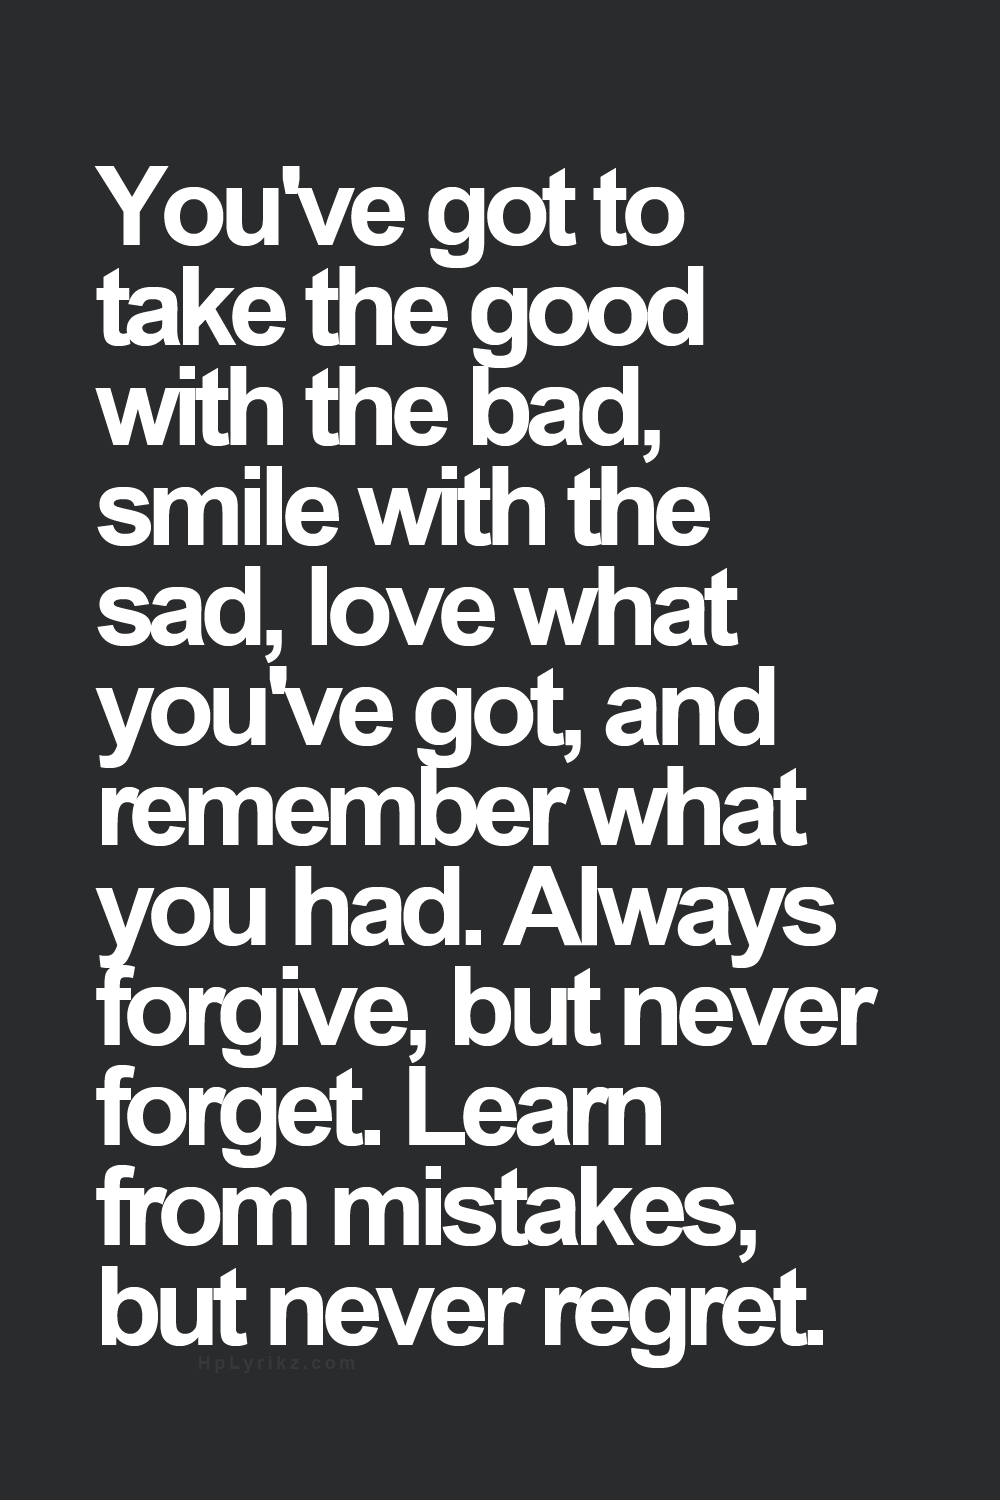 Learn To Accept and Forgive Your Past - Picture Quotes